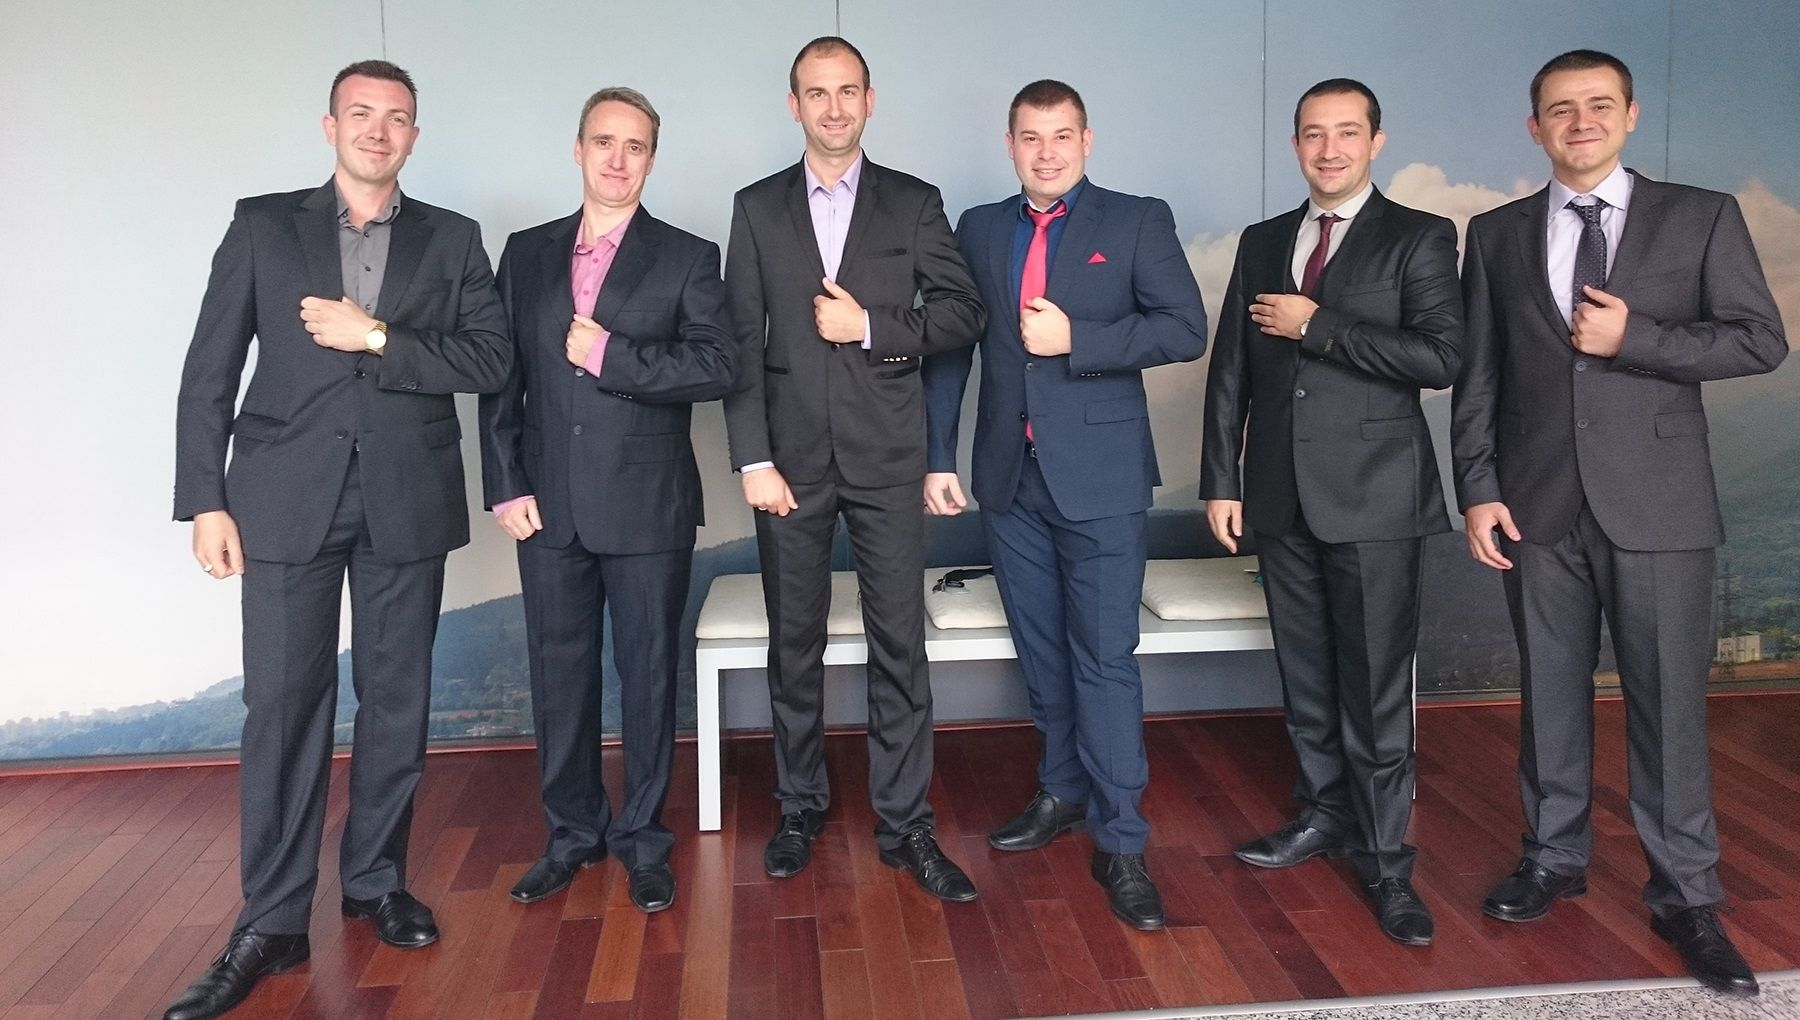 Suits day! Network Engineers.